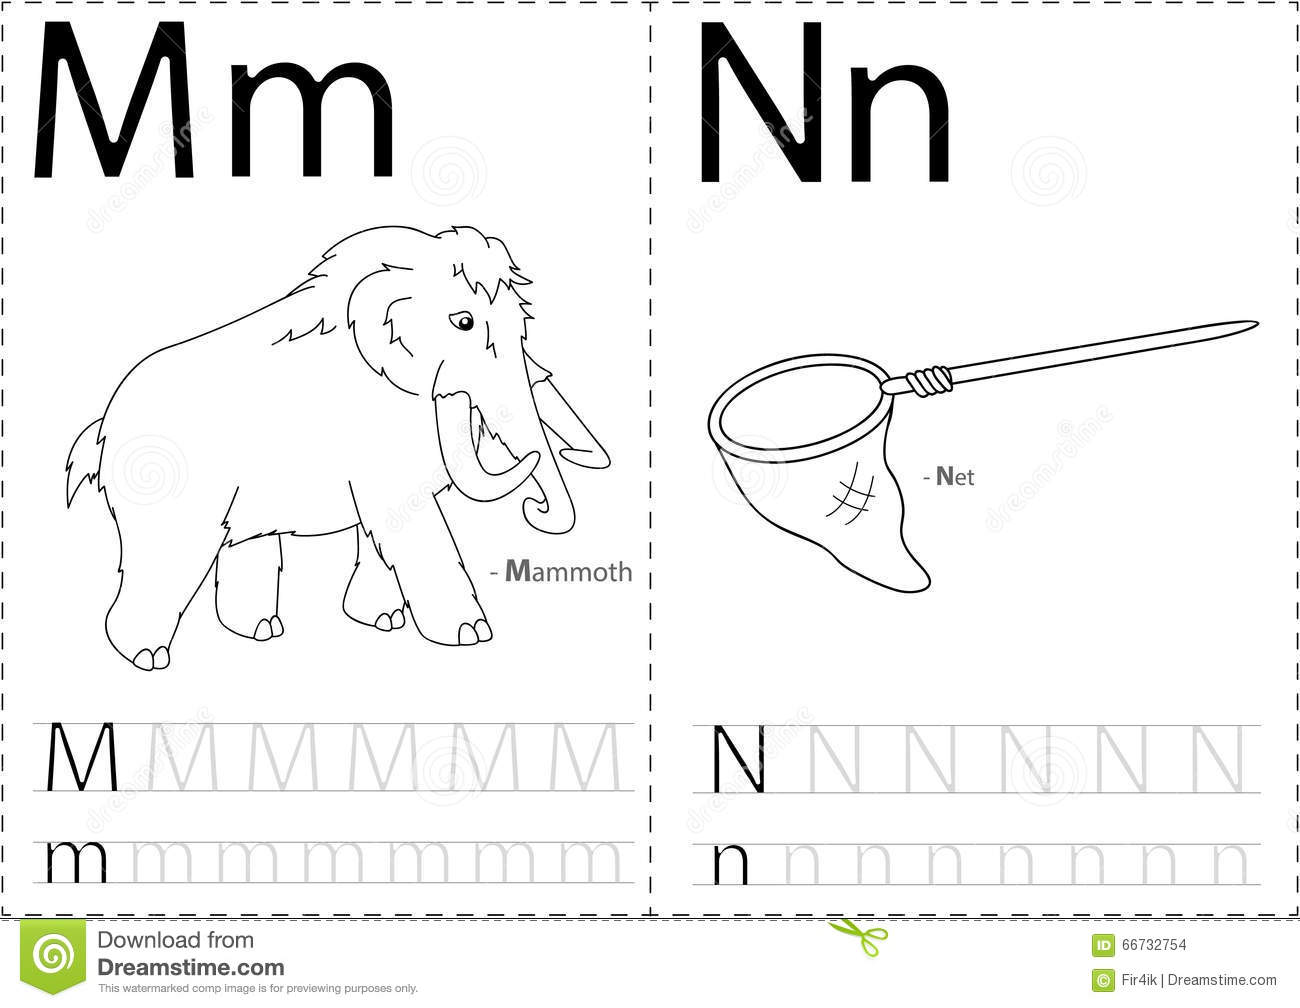 Cartoon Mammoth And Net Alphabet Tracing Worksheet Writing A Z Stock Vector